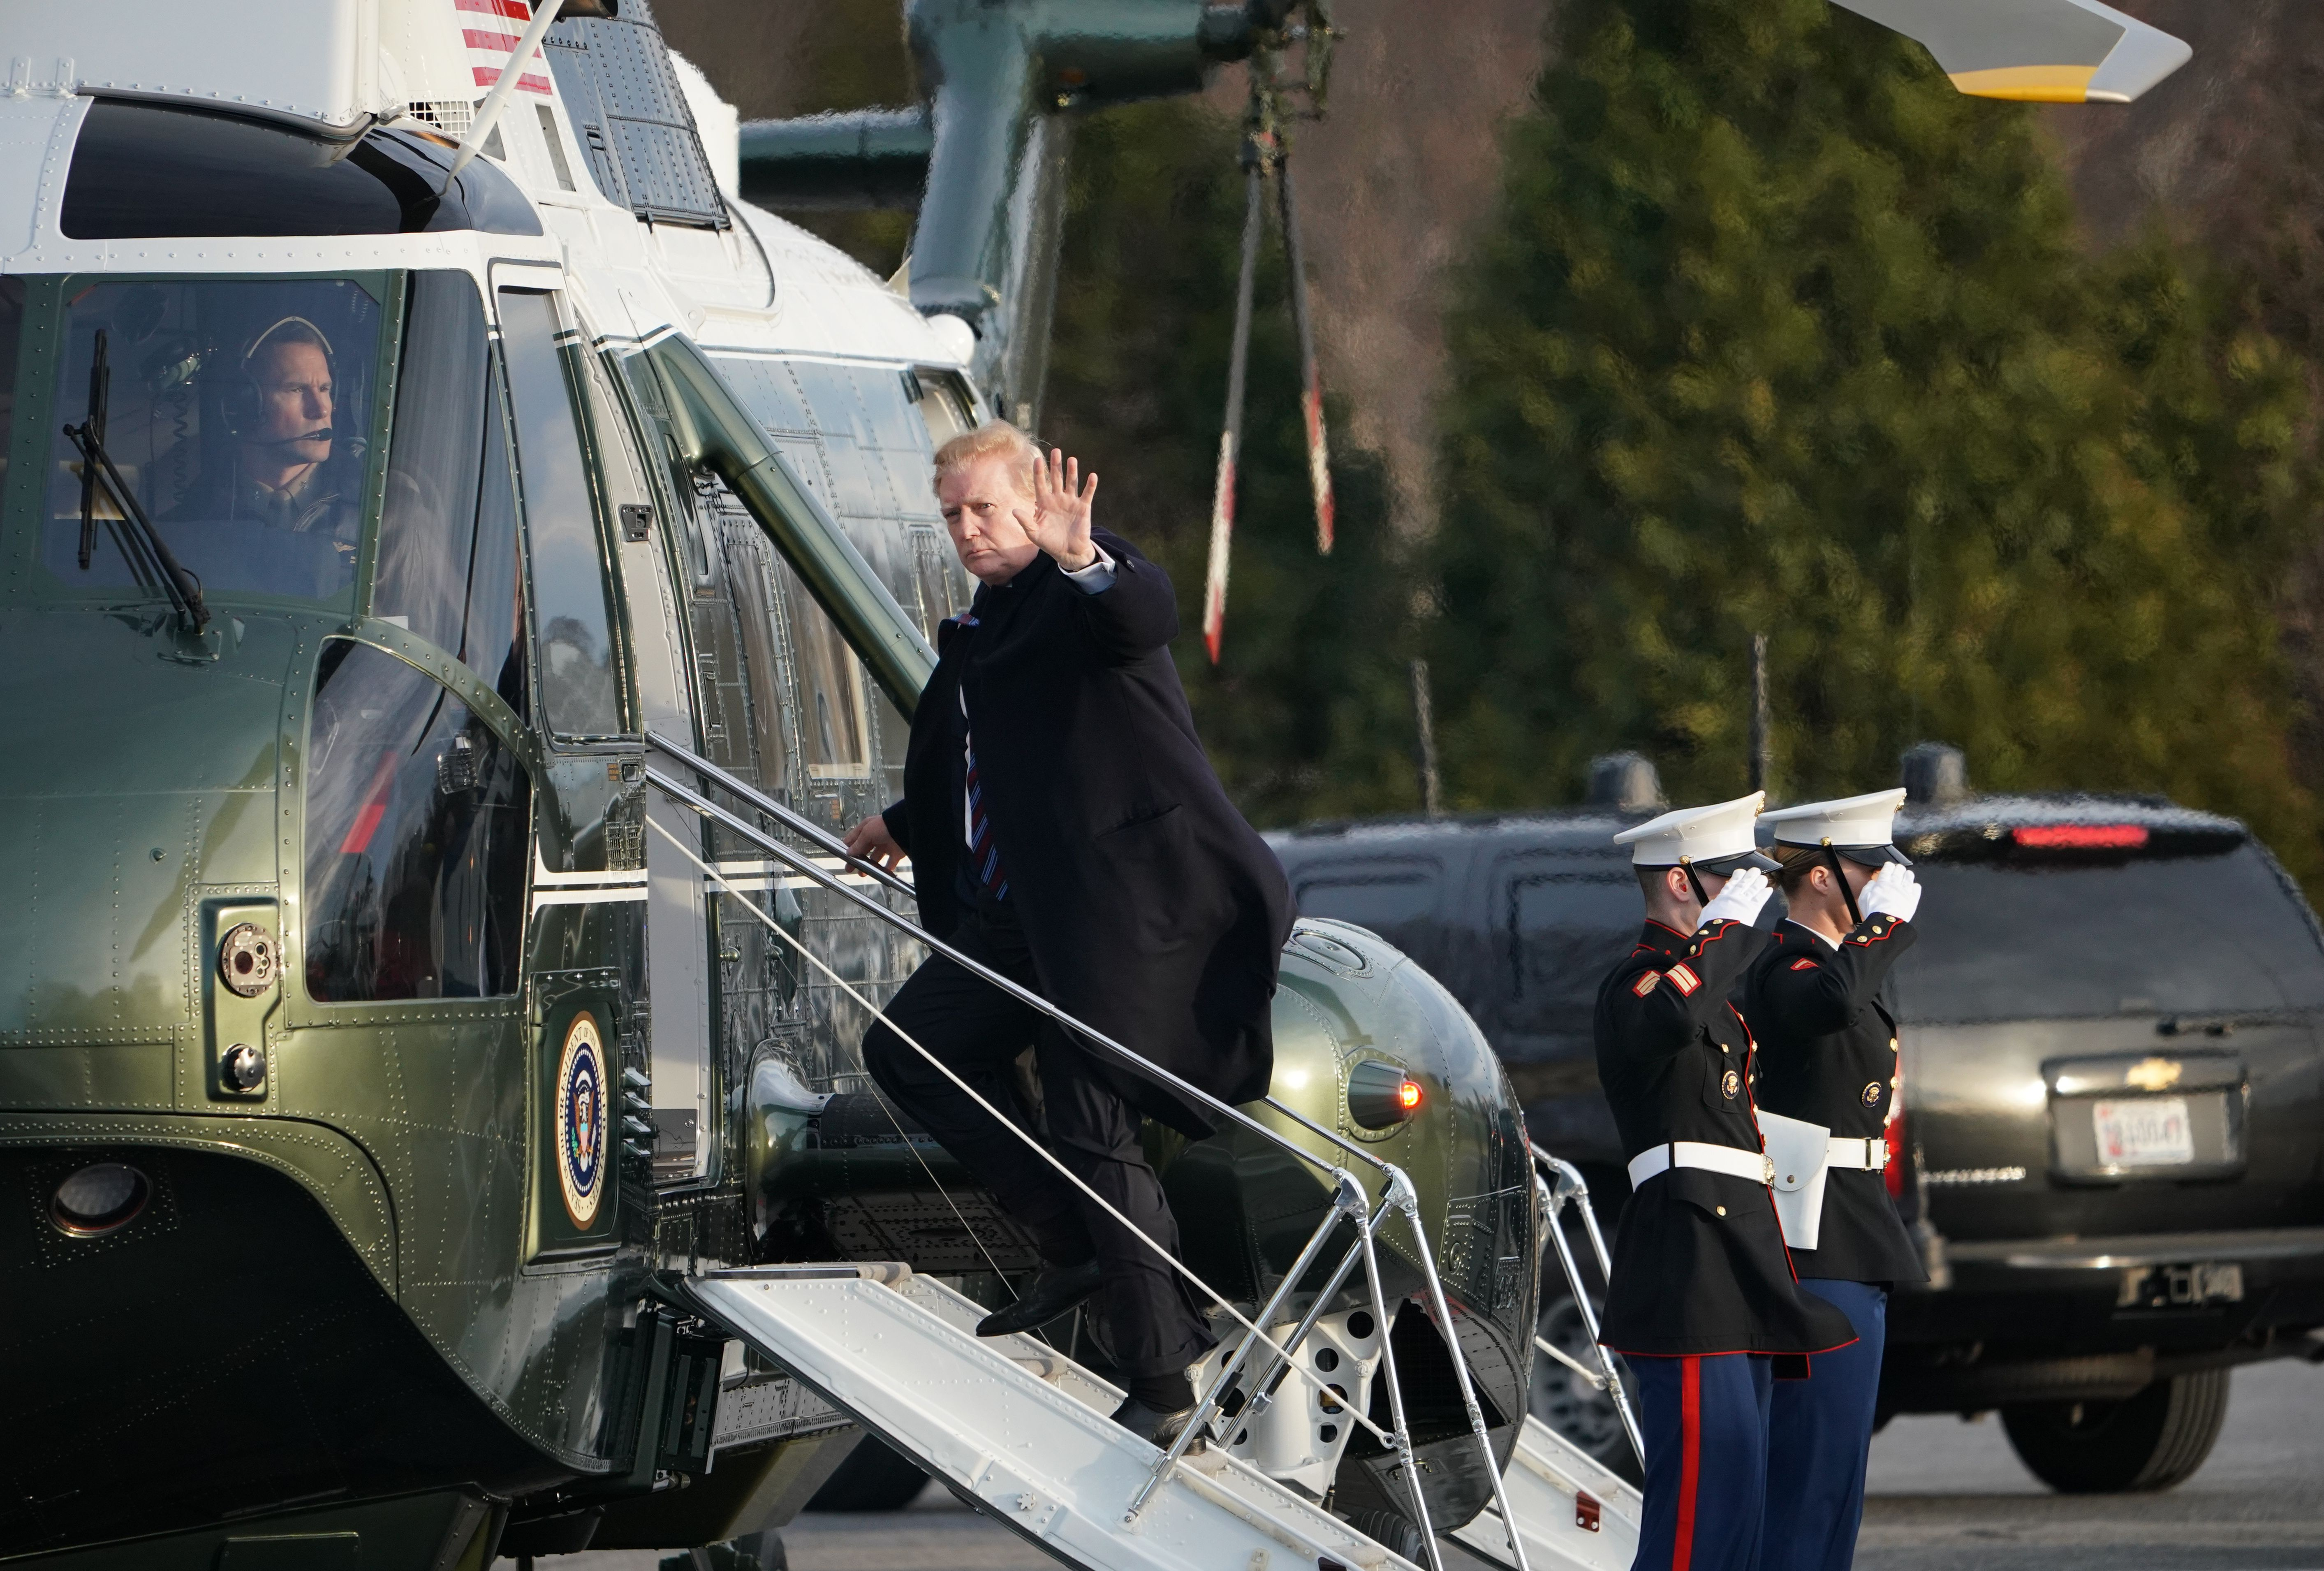 US President Donald Trump boards Marine One as he departs from the Walter Reed National Military Medical Center in Bethesda, Maryland on February 8, 2019. (MANDEL NGAN/AFP/Getty Images)